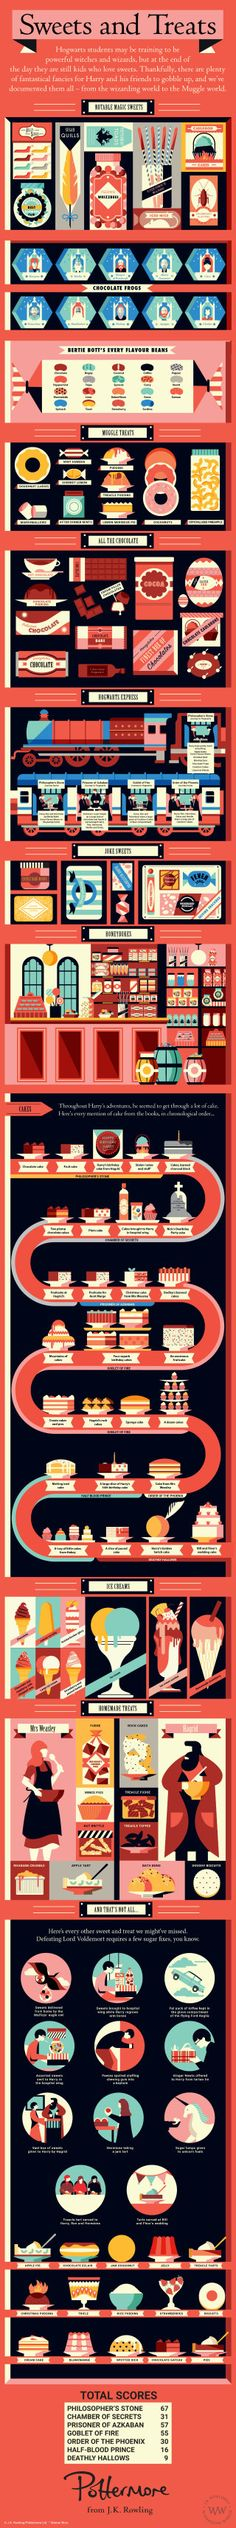 Sweets and Treats infographic